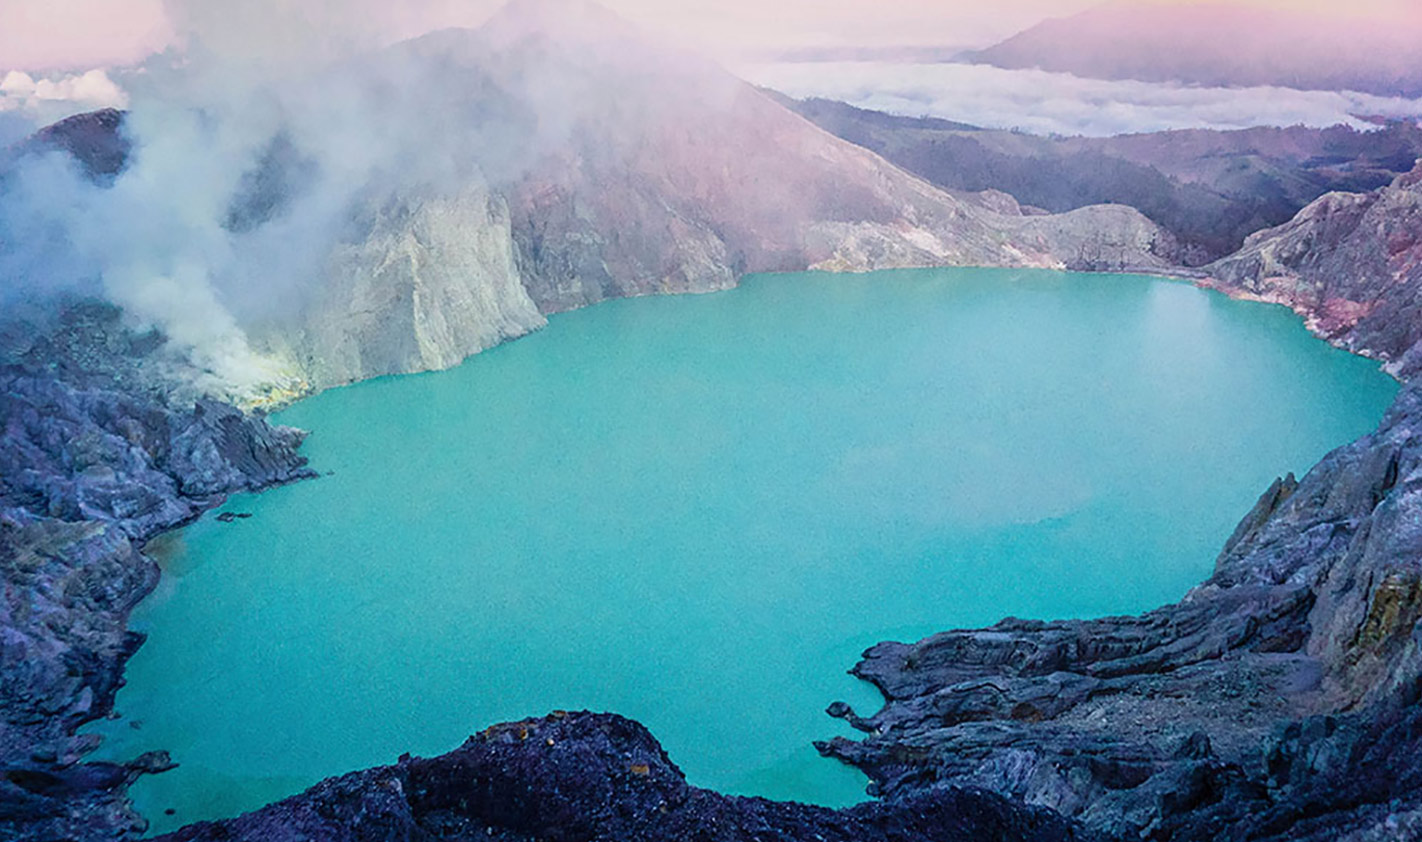 Banyuwangi tour package, Ijen crater tour package